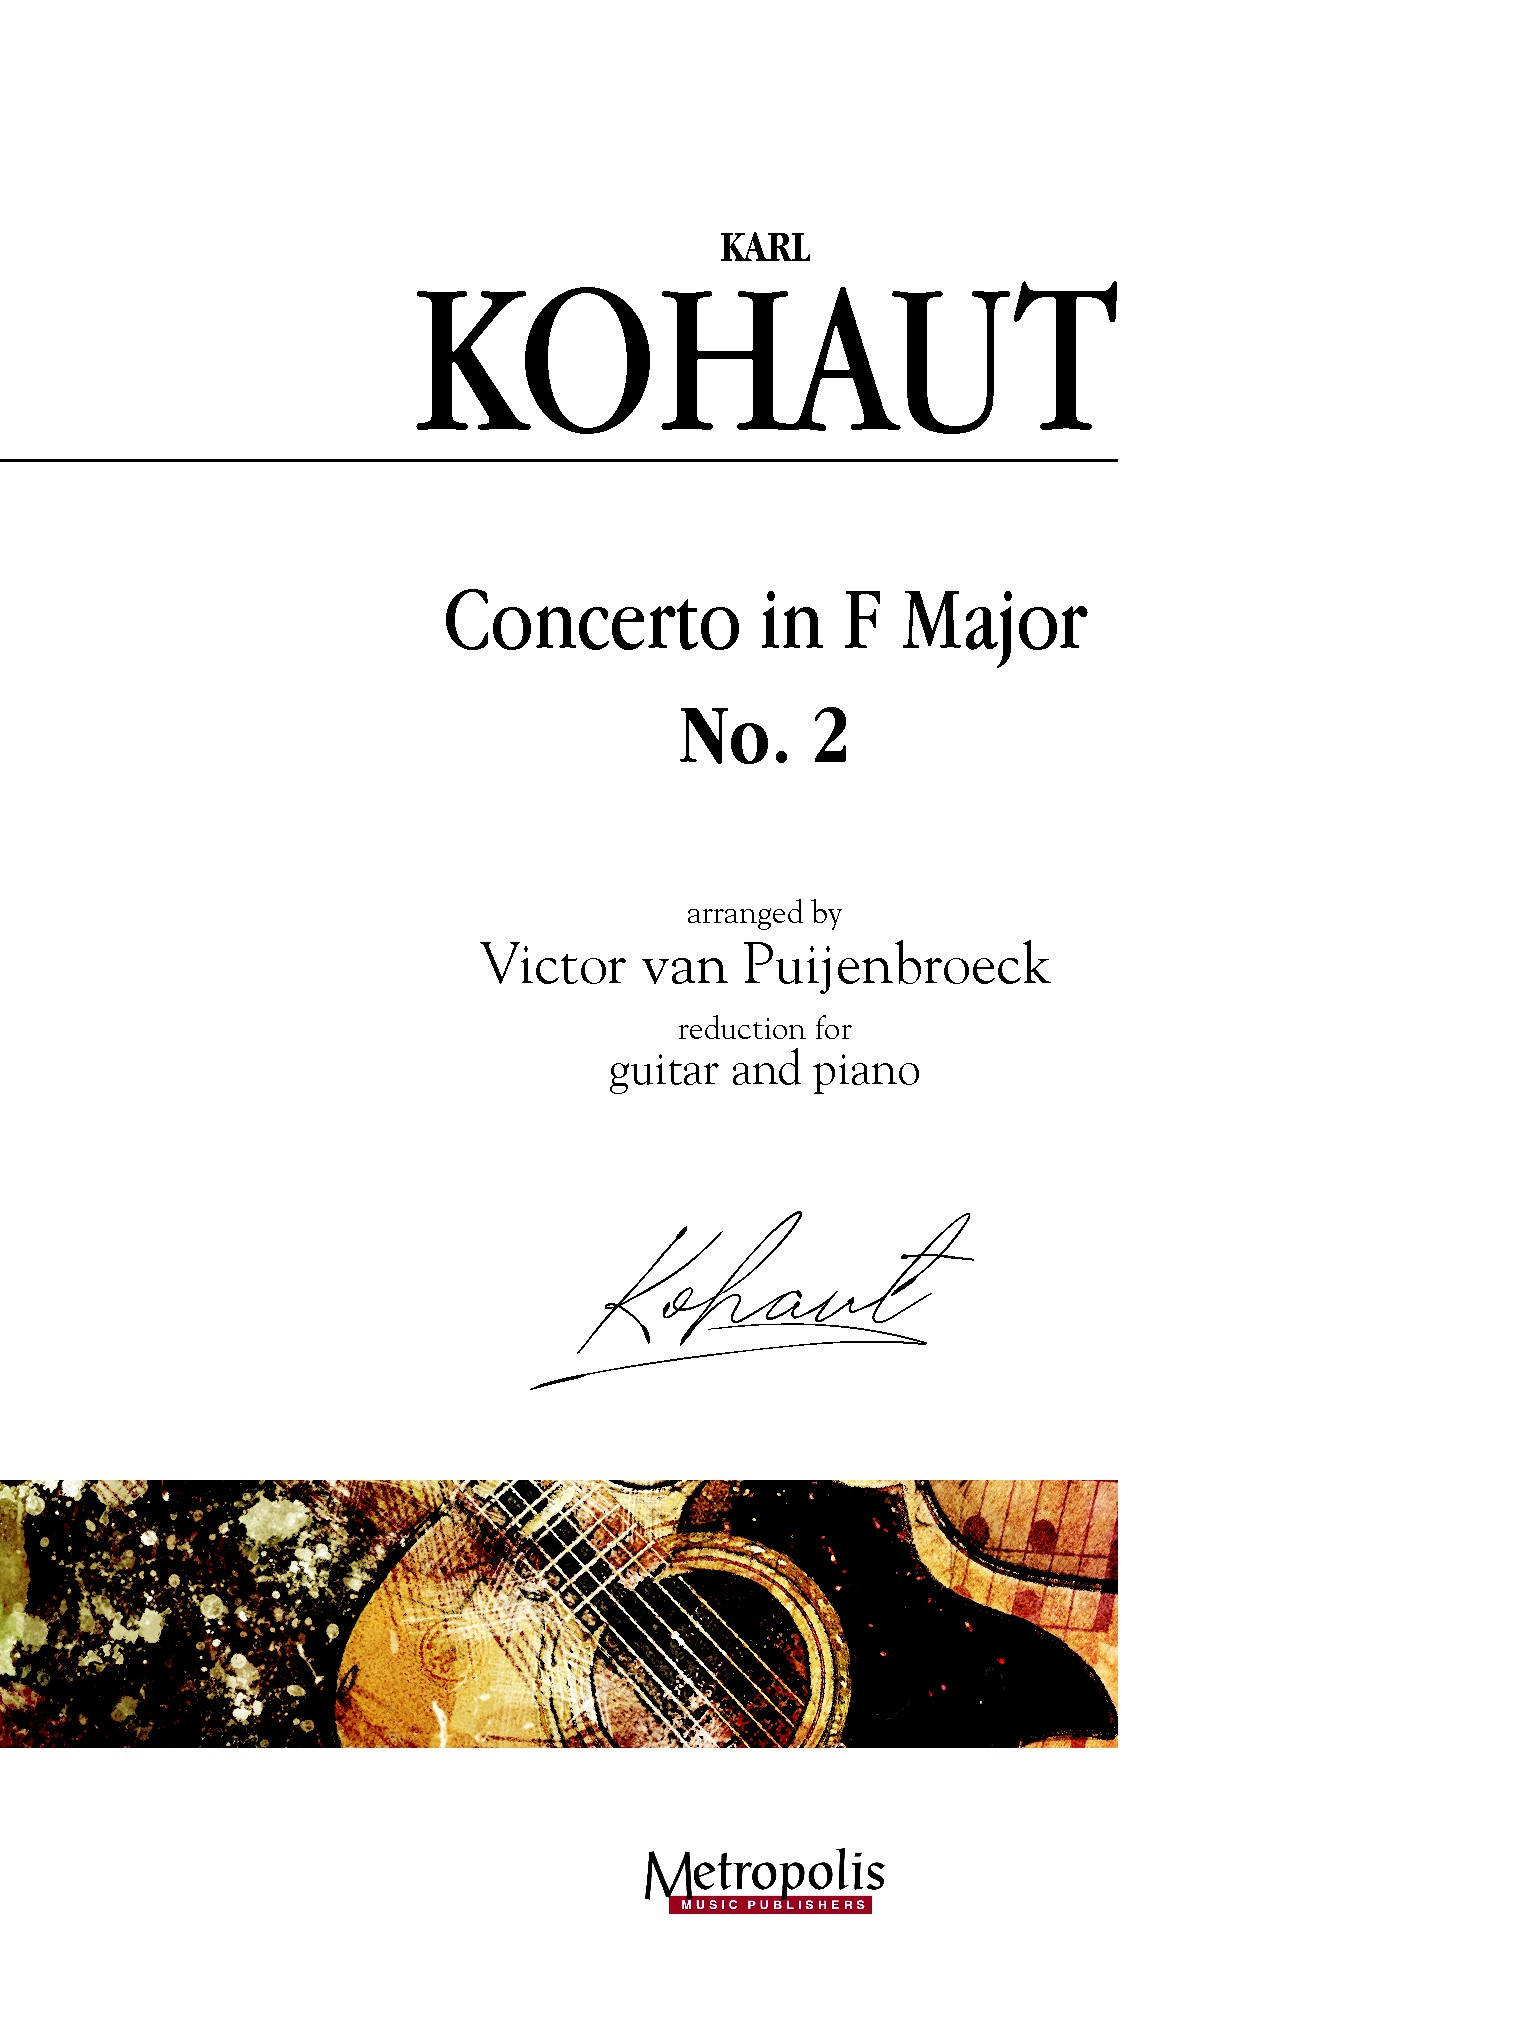 Karl Kohaut: Concerto in F Major  No. 2: Orchestra: Score and Parts